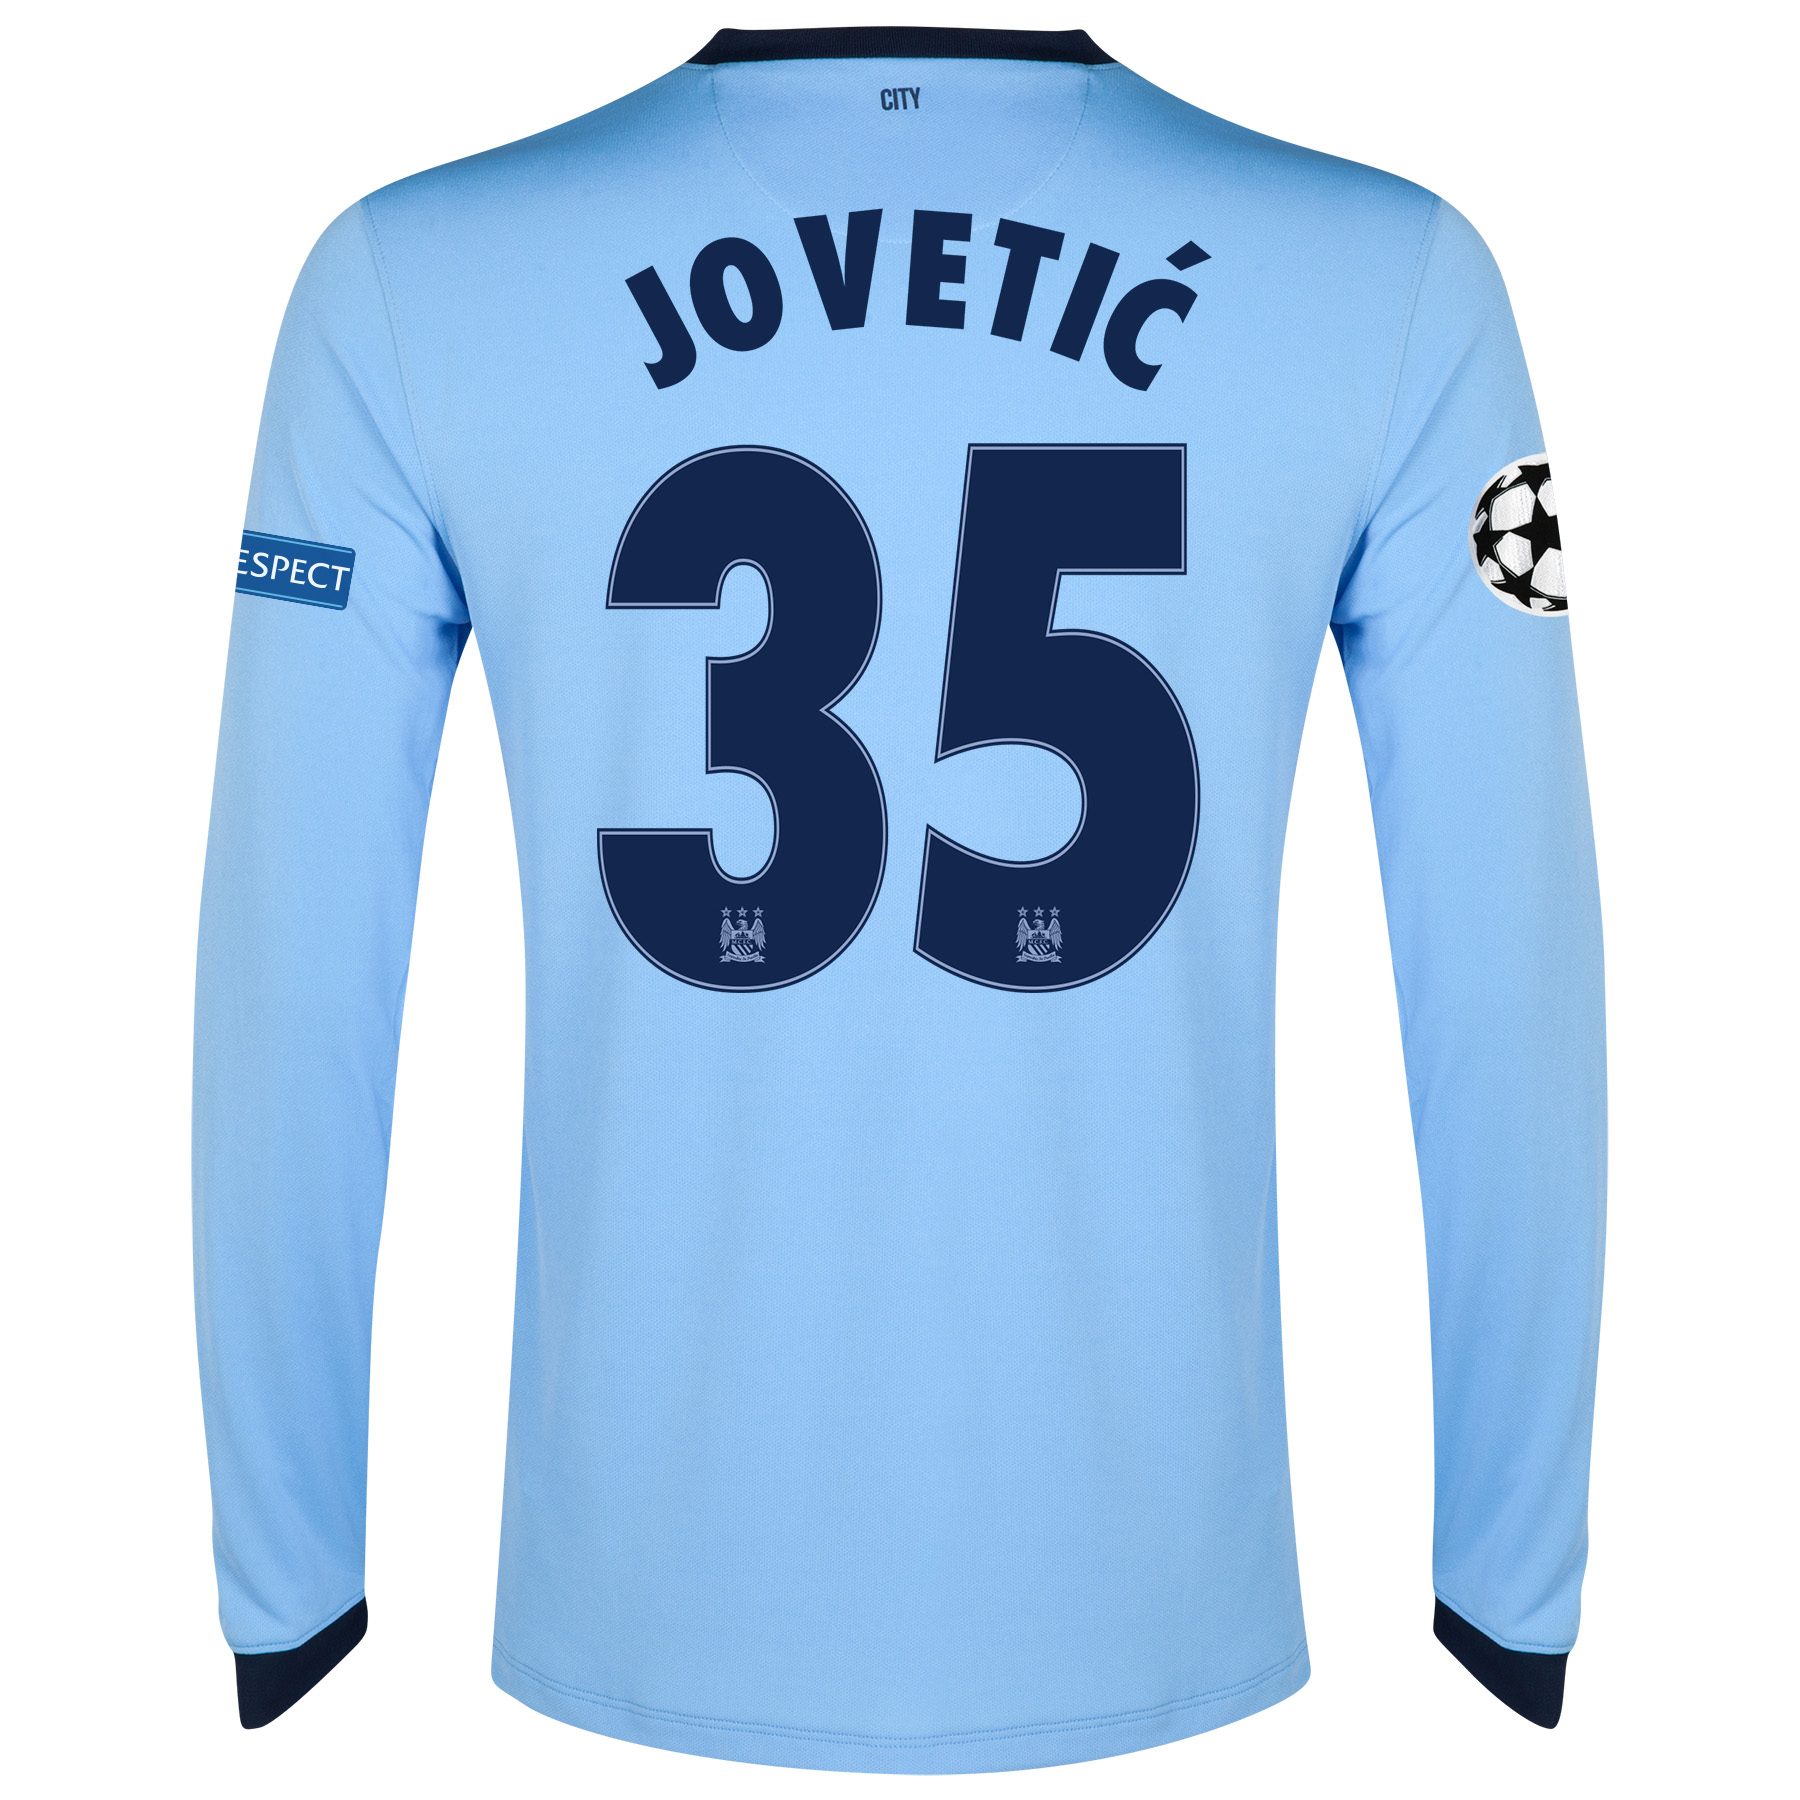 Manchester City UEFA Champions League Home Shirt 2014/15 - Long Sleeve - Kids Sky Blue with Jovetic 35 printing